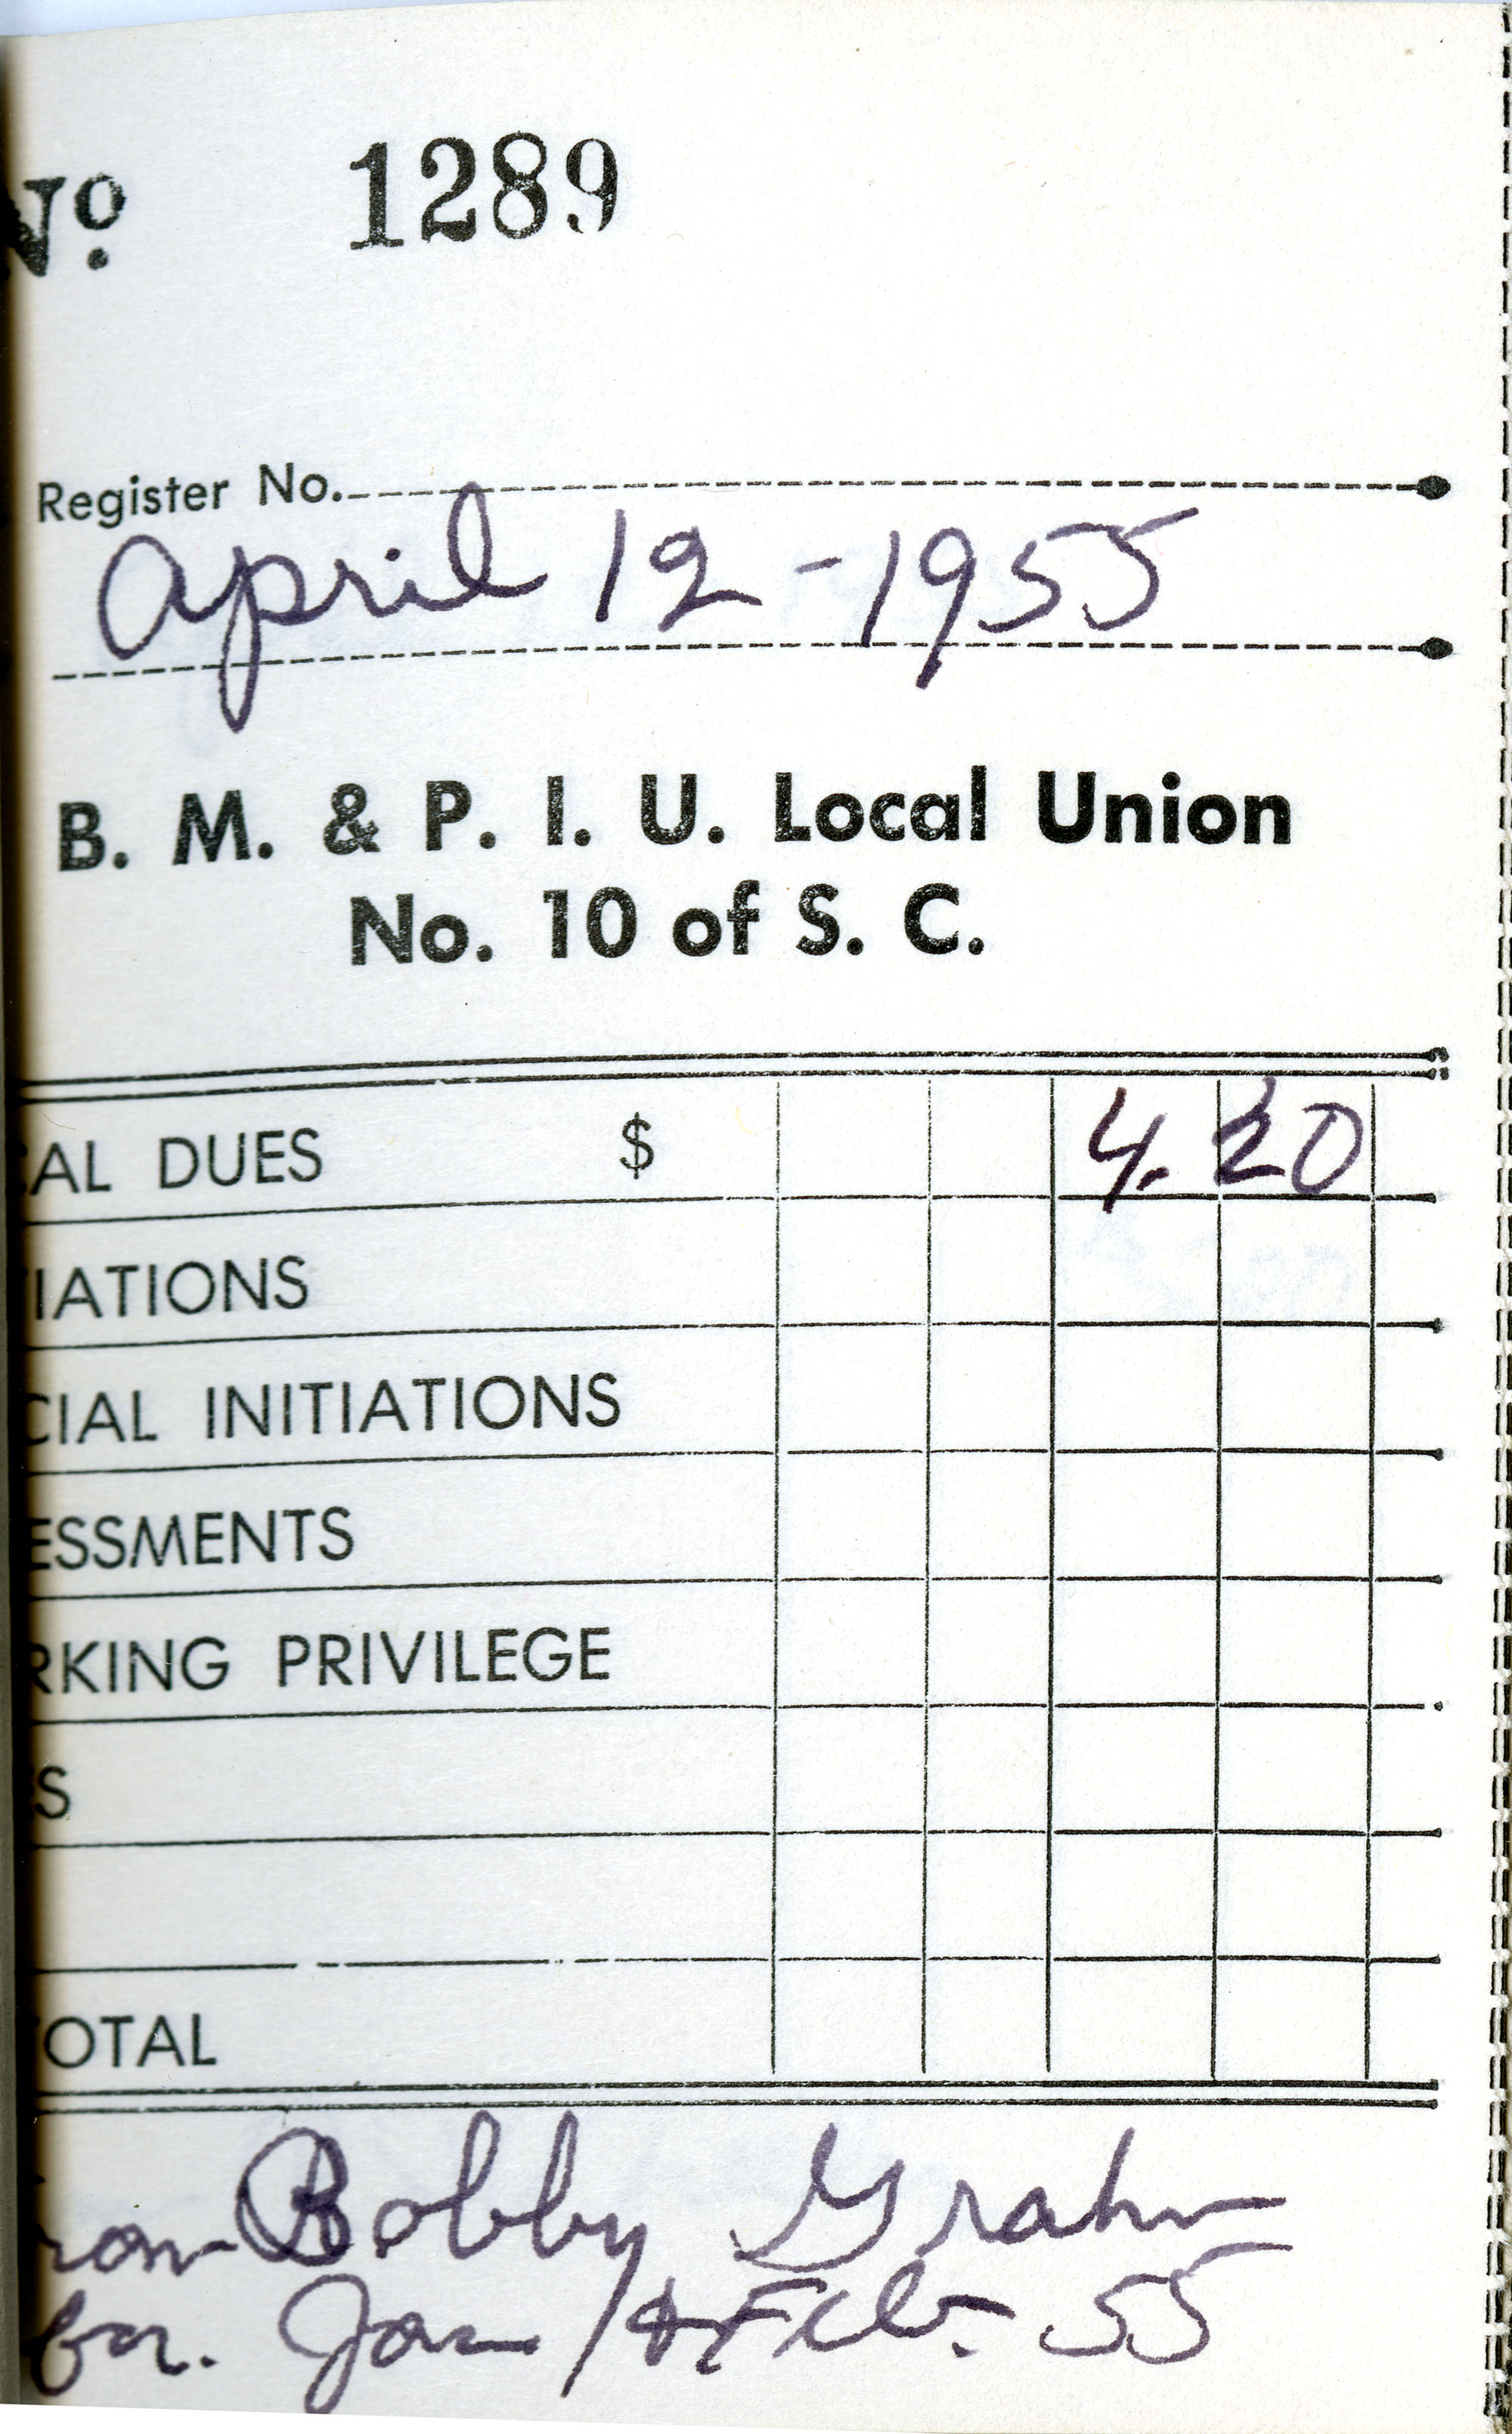 Receipt Book 4, Page 23